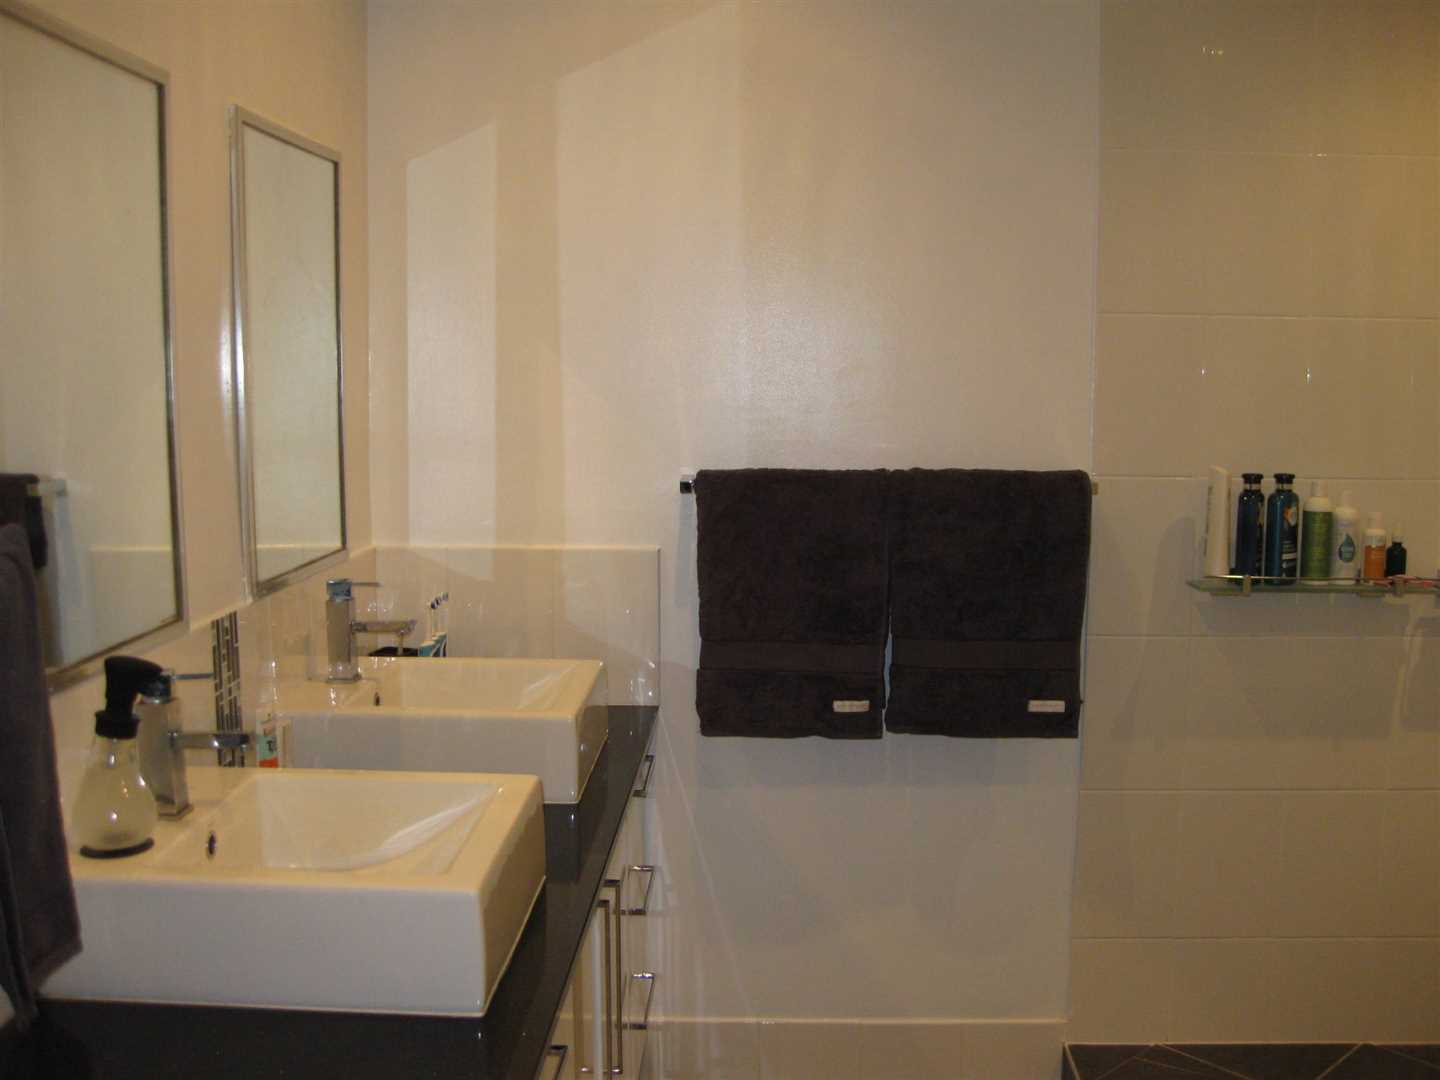 Inside view of part of home showing part of bathroom, photo 2